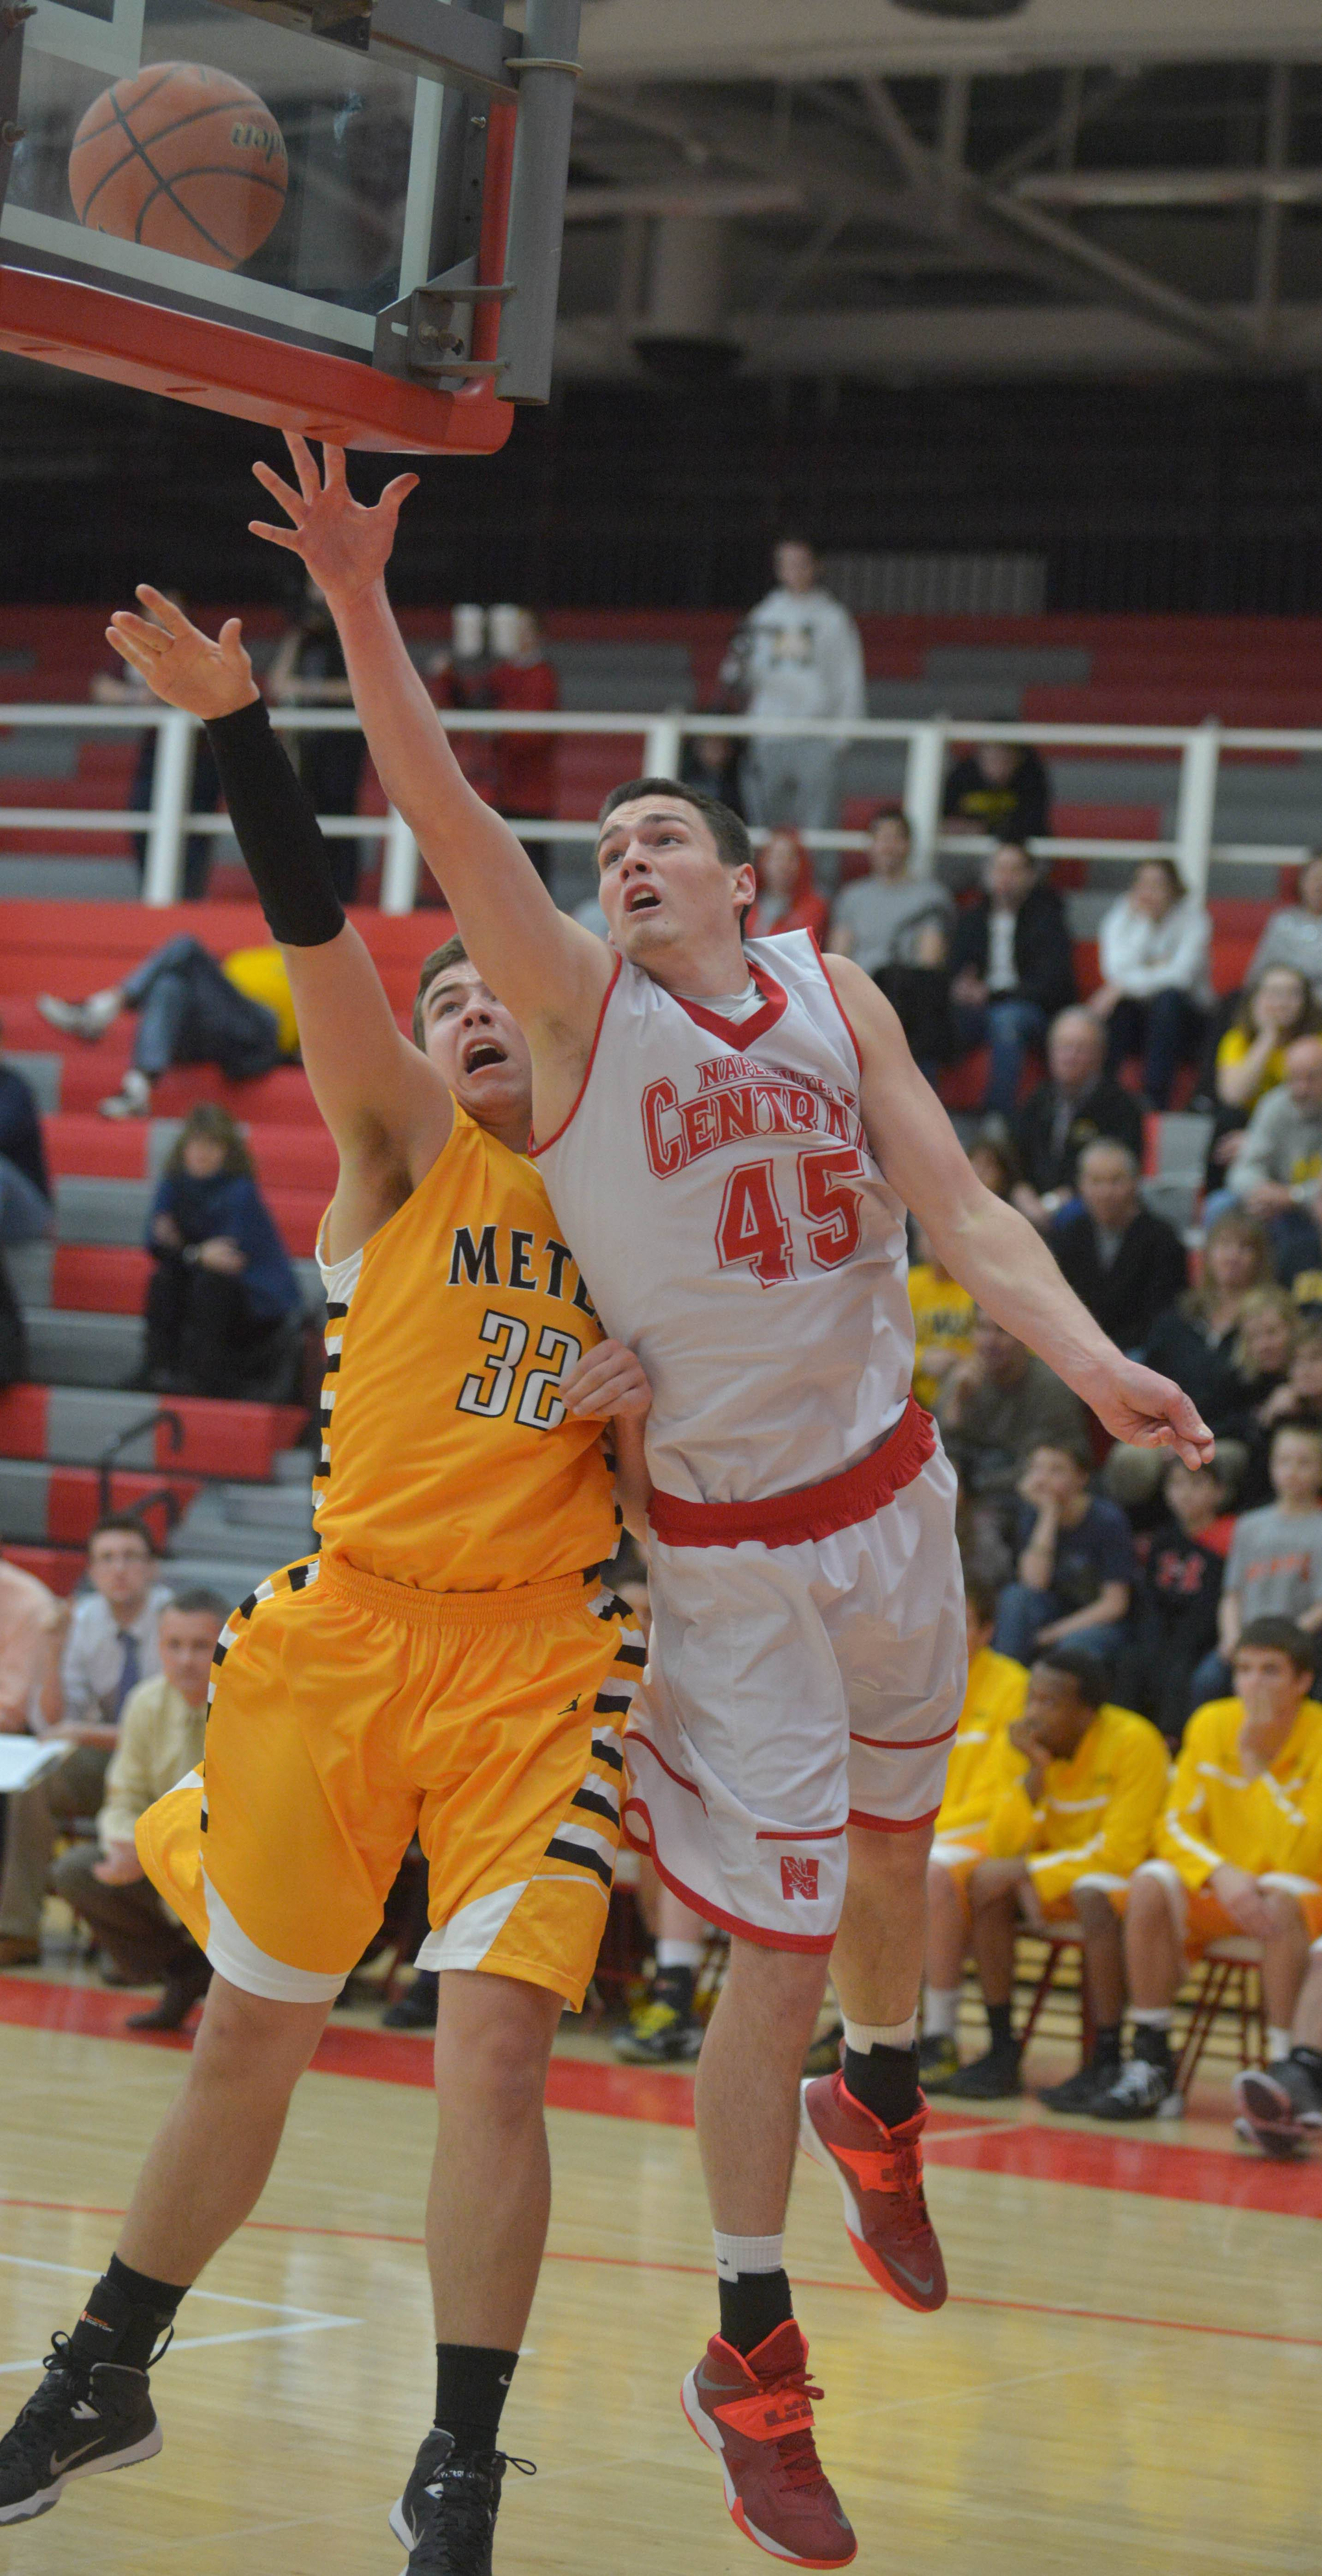 Mark Konkle of Metea Valley and Naperville Central's Nick Czarnowski battle during the Metea Valley vs. Naperville Central Class 4A Naperville Central regional semifinals boys basketball game Wednesday.